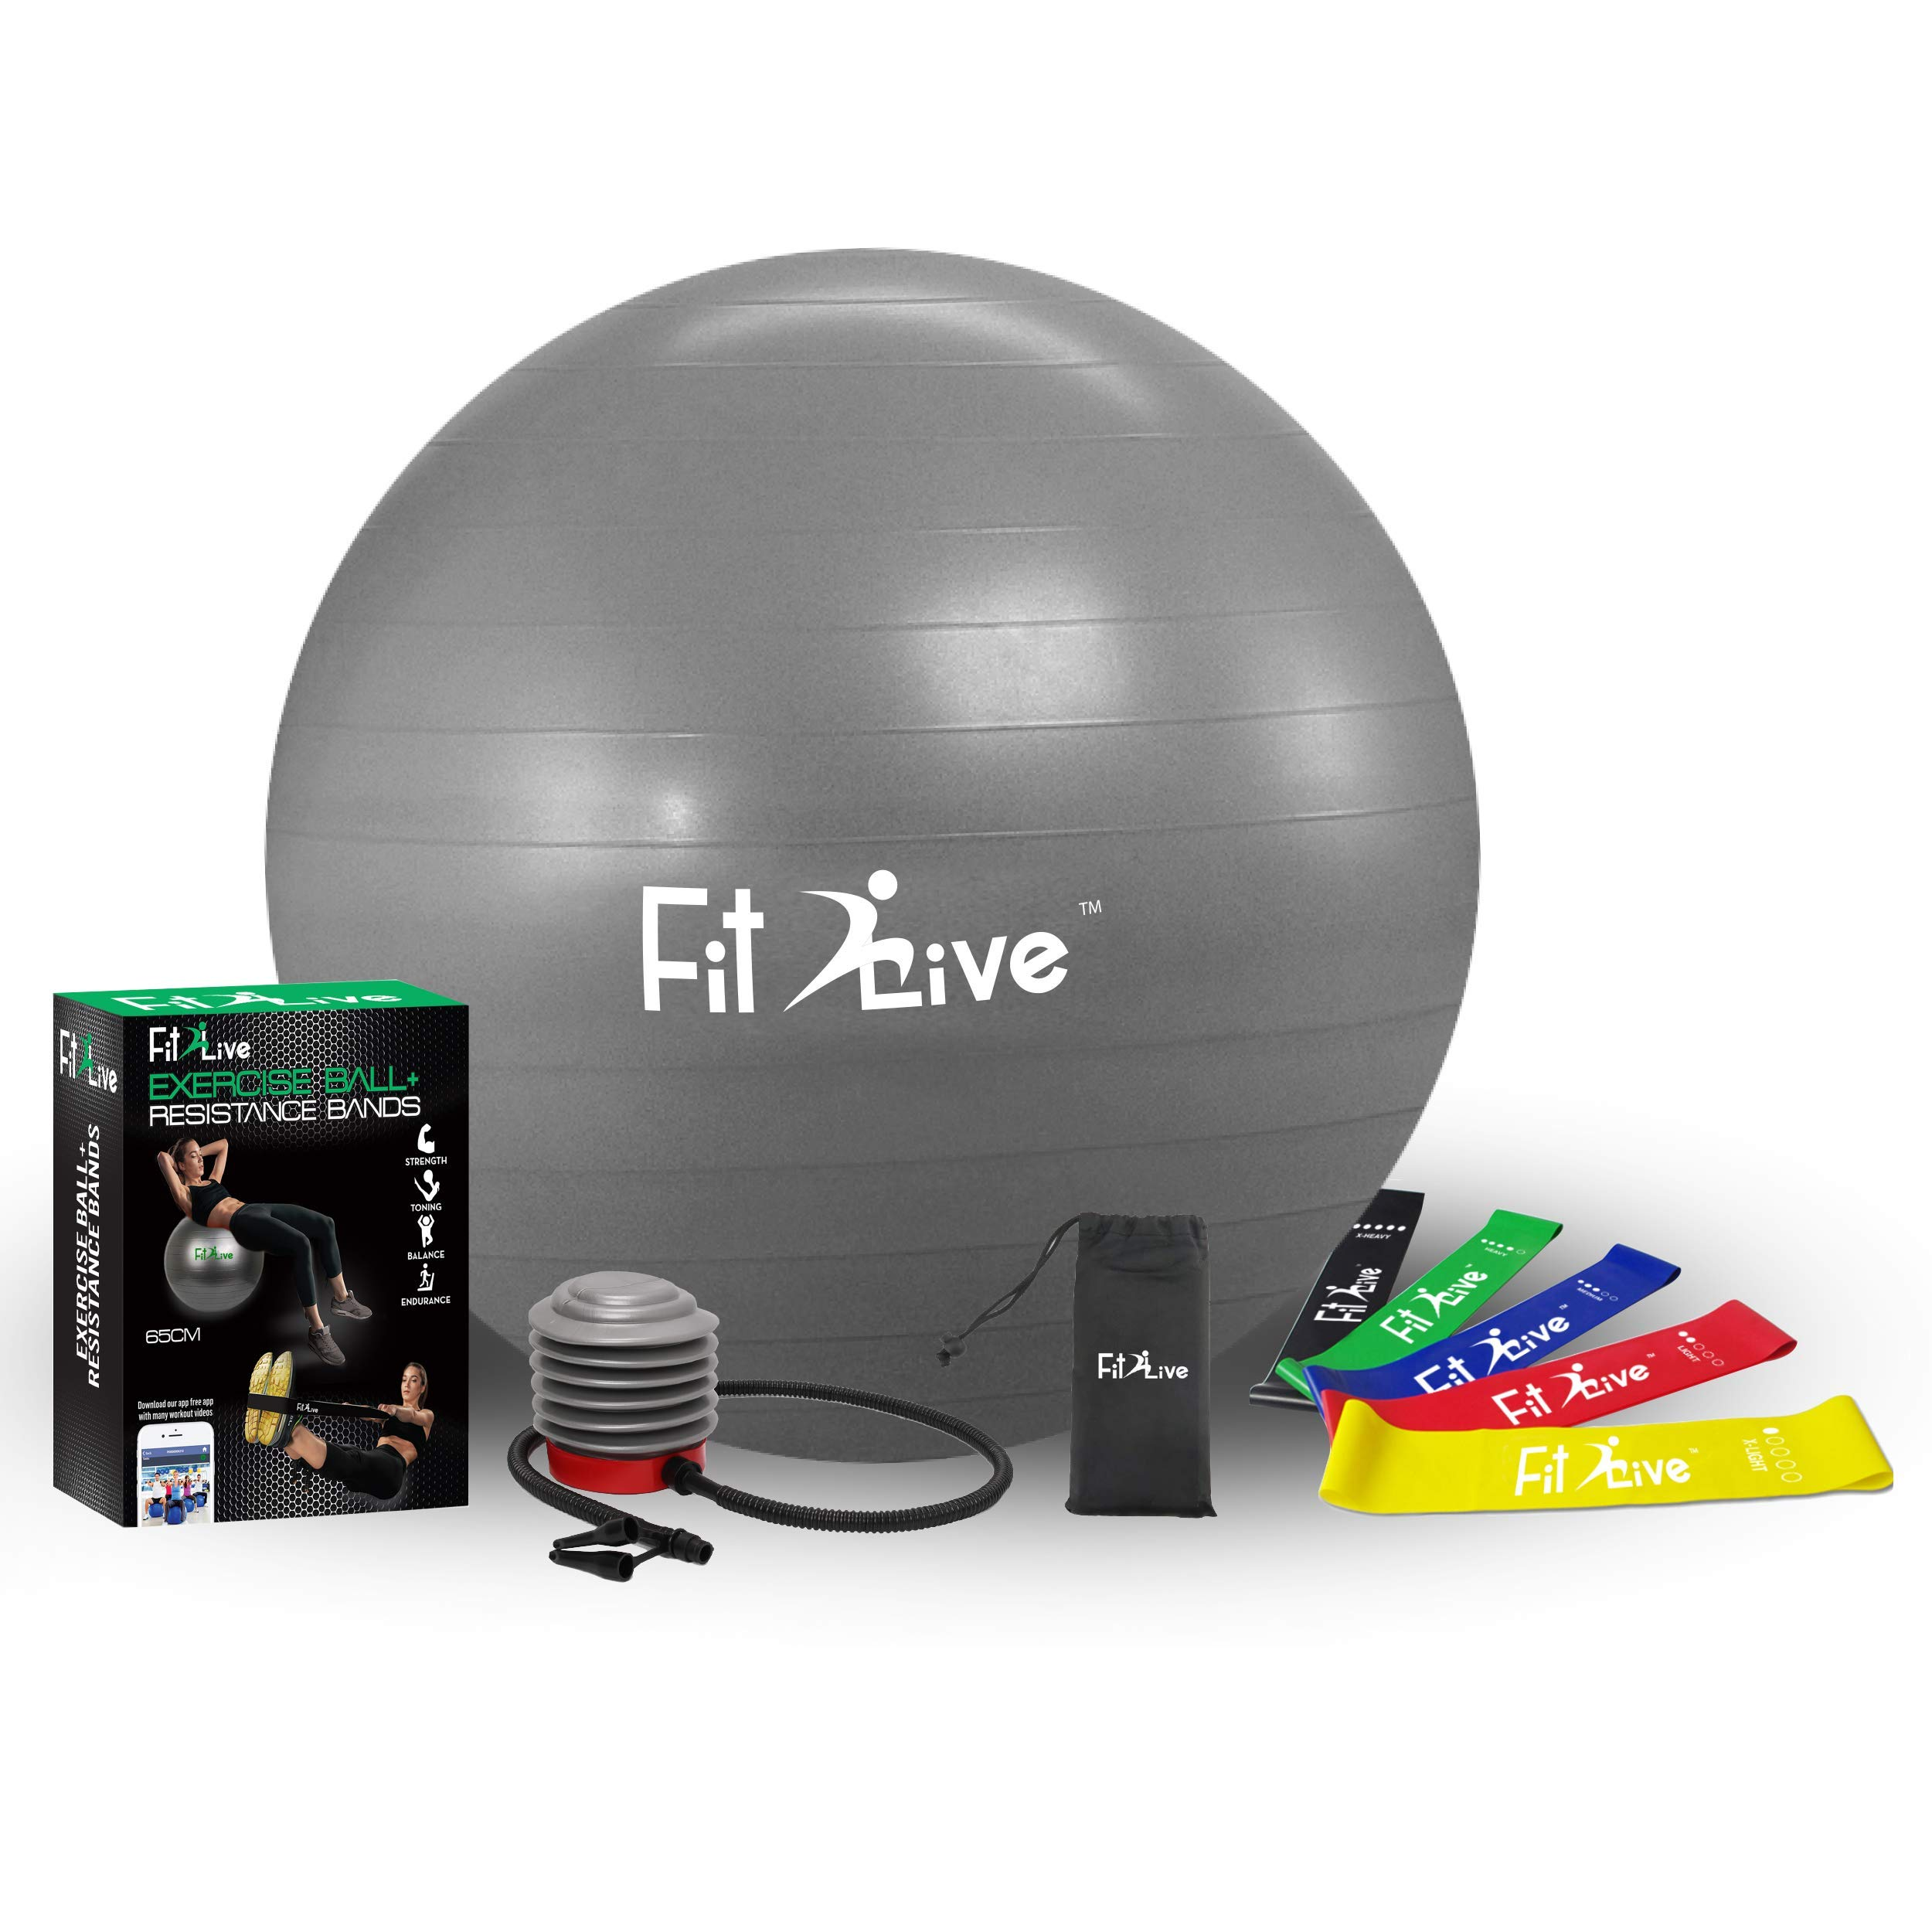 Fit2Live Exercise Ball for Yoga,Stability,Fitness,+ Free Resistance Bands, 2 in 1 Exercise Package- Anti Burst Quality - Includes Foot Pump and Access to Our APP for Workout Videos.